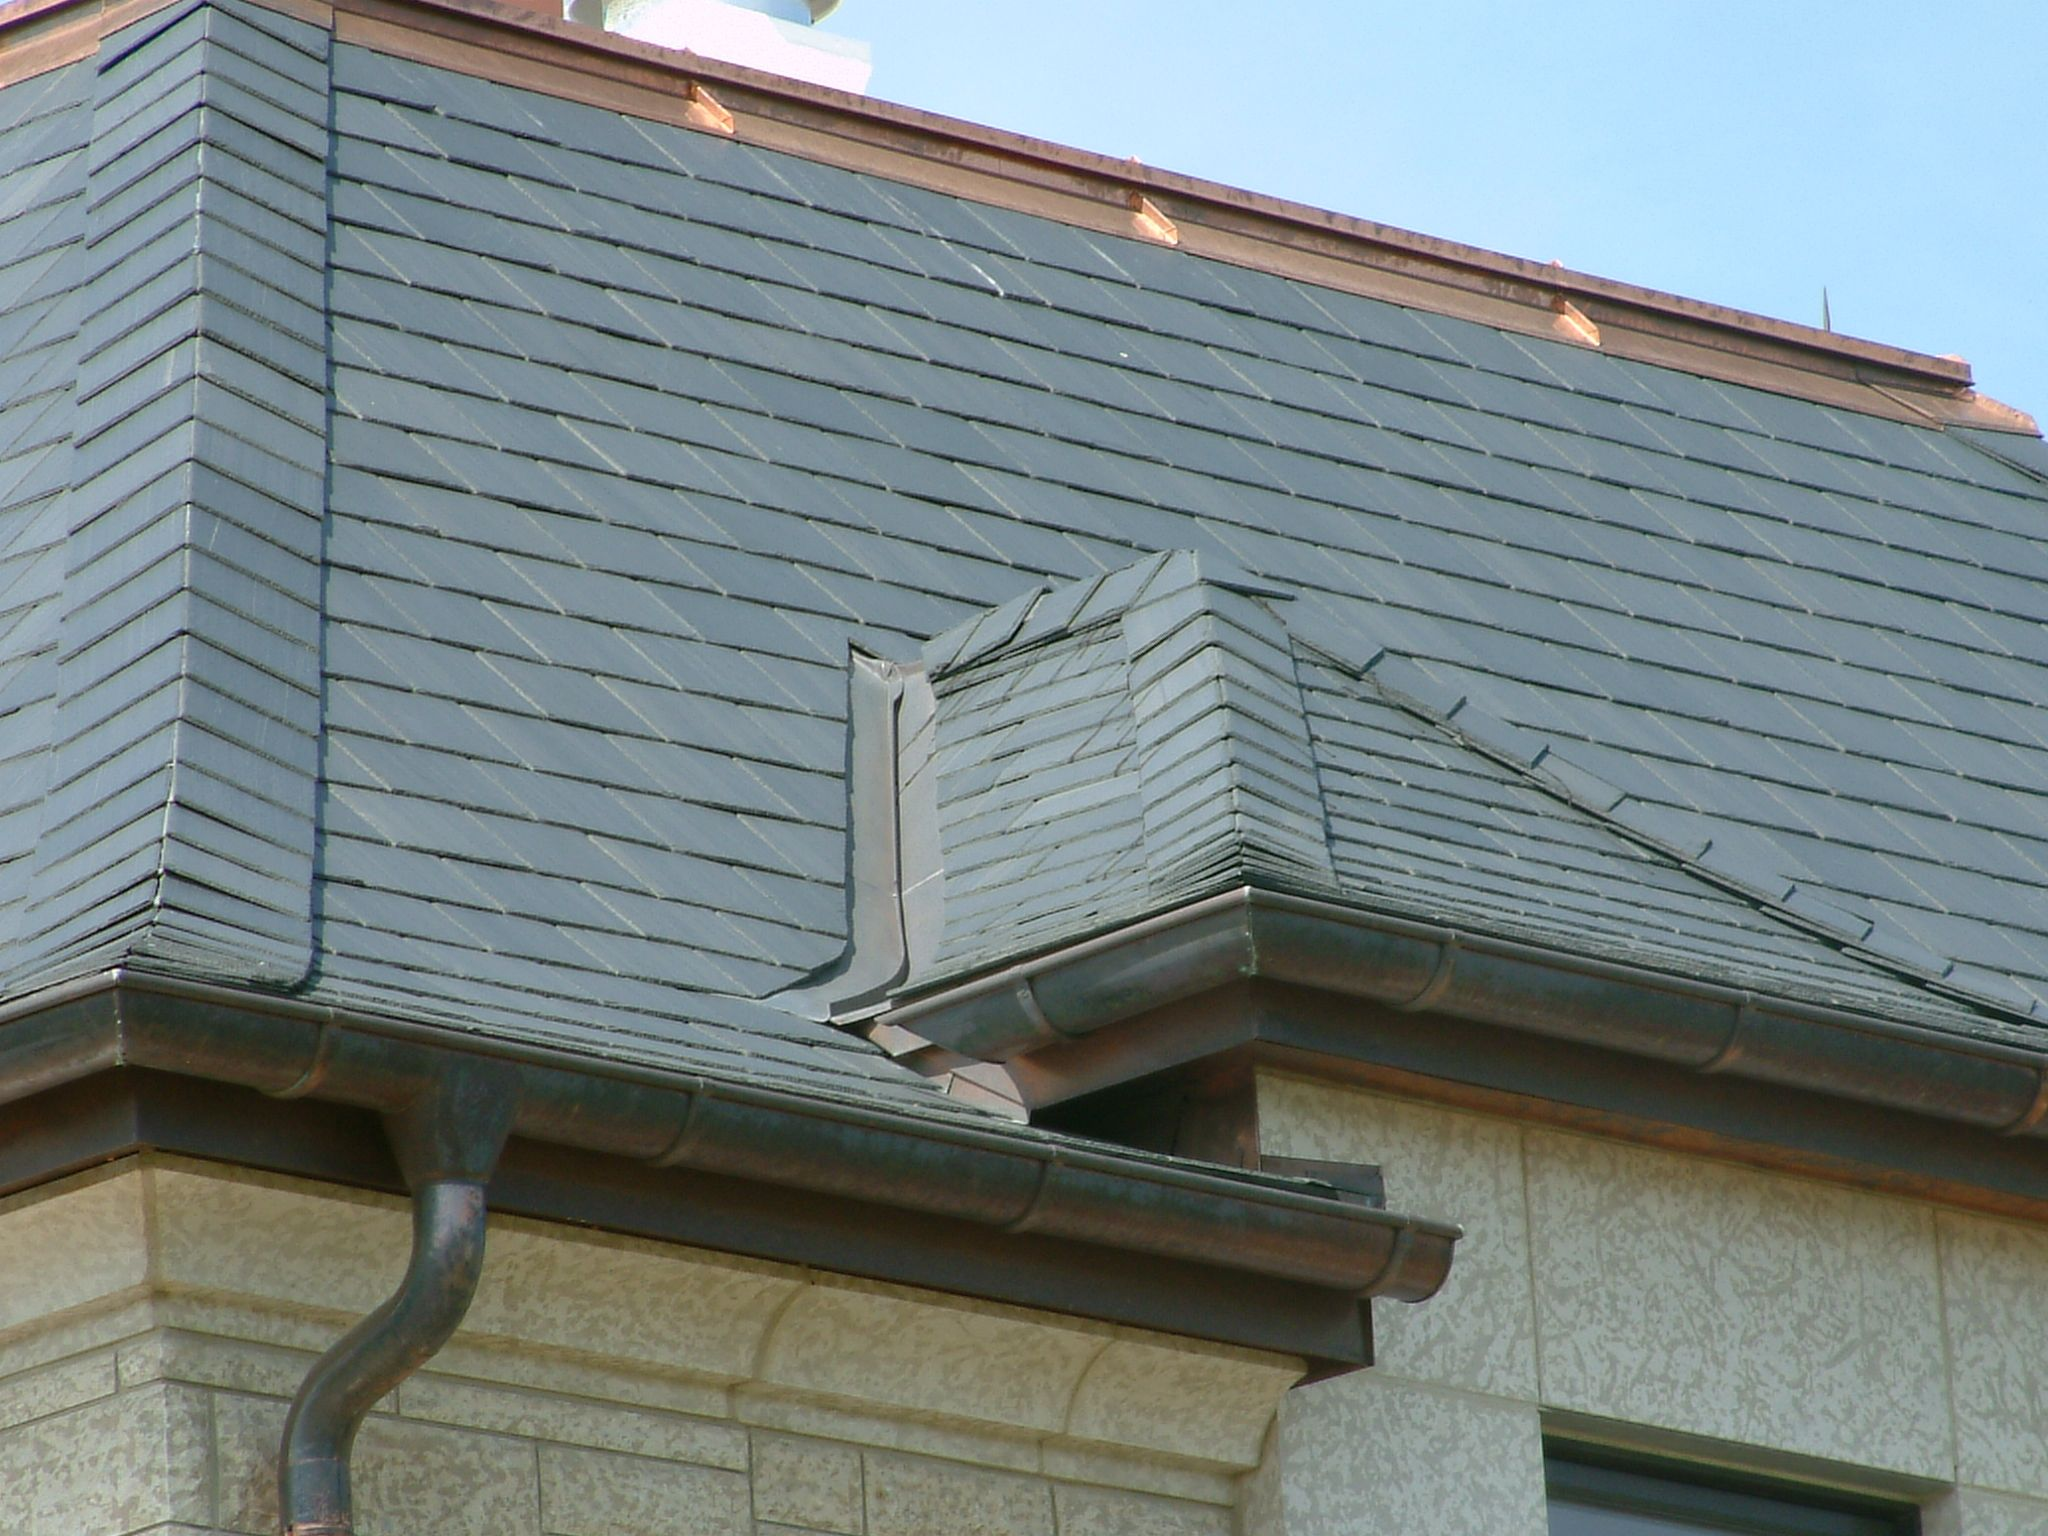 Natural Slate Roof Slate Roof Outdoor Decor North Country